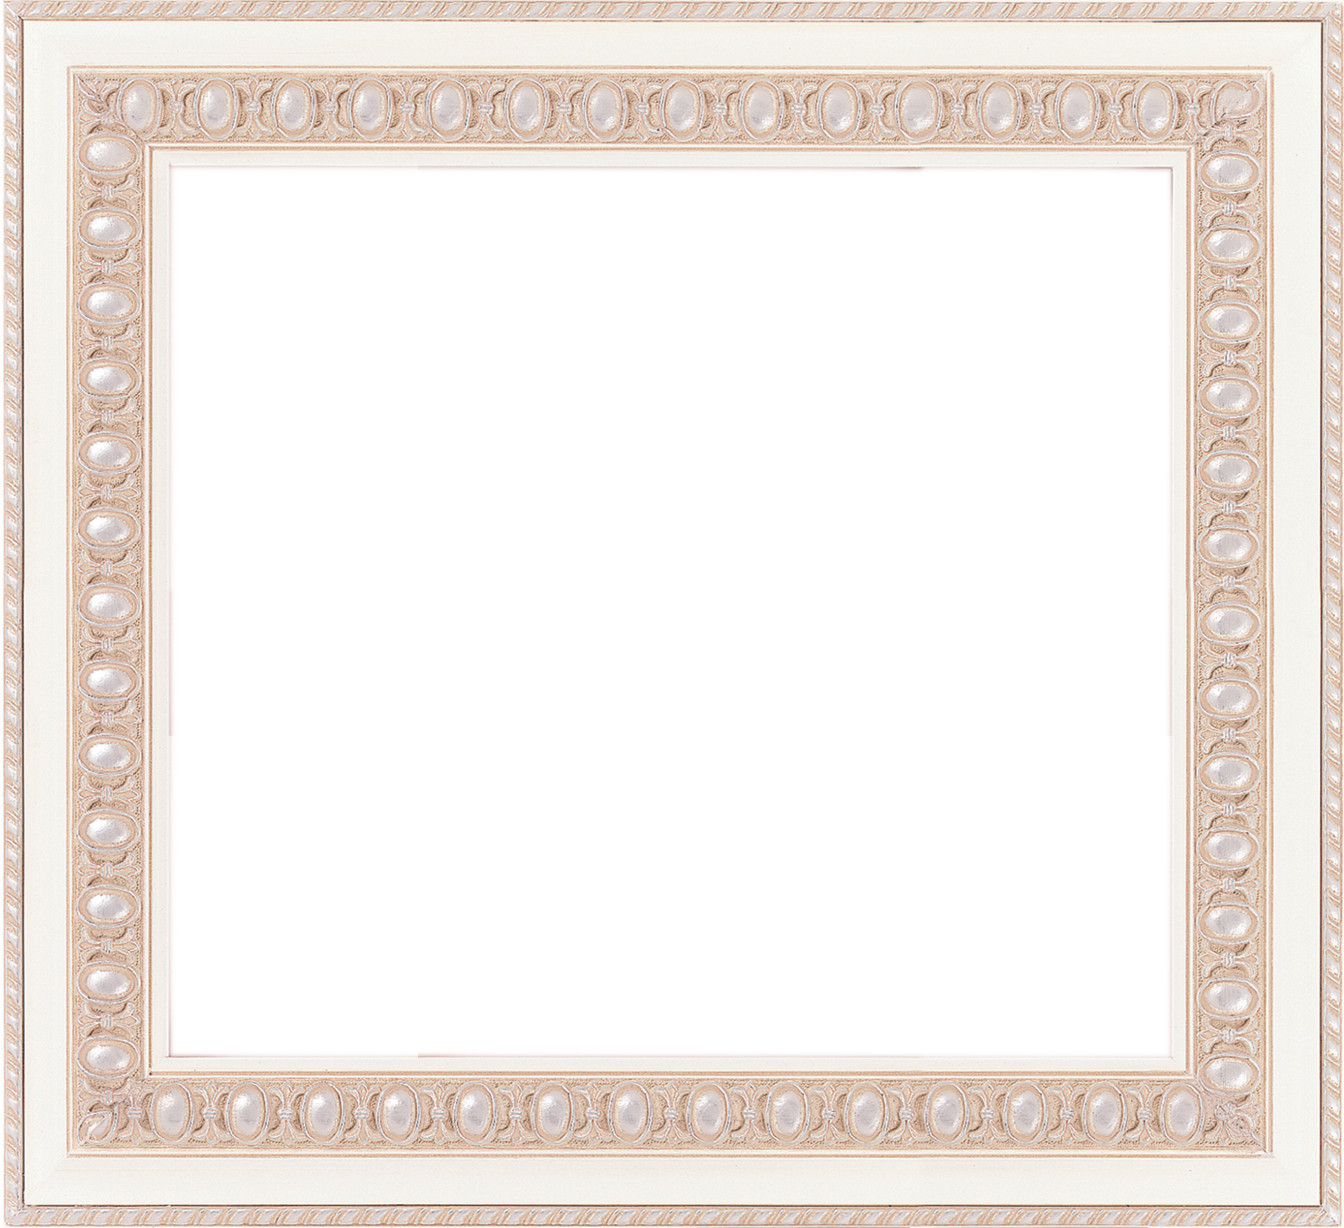 Wall Frames white frame, girly frame, photography, picture frame www ...